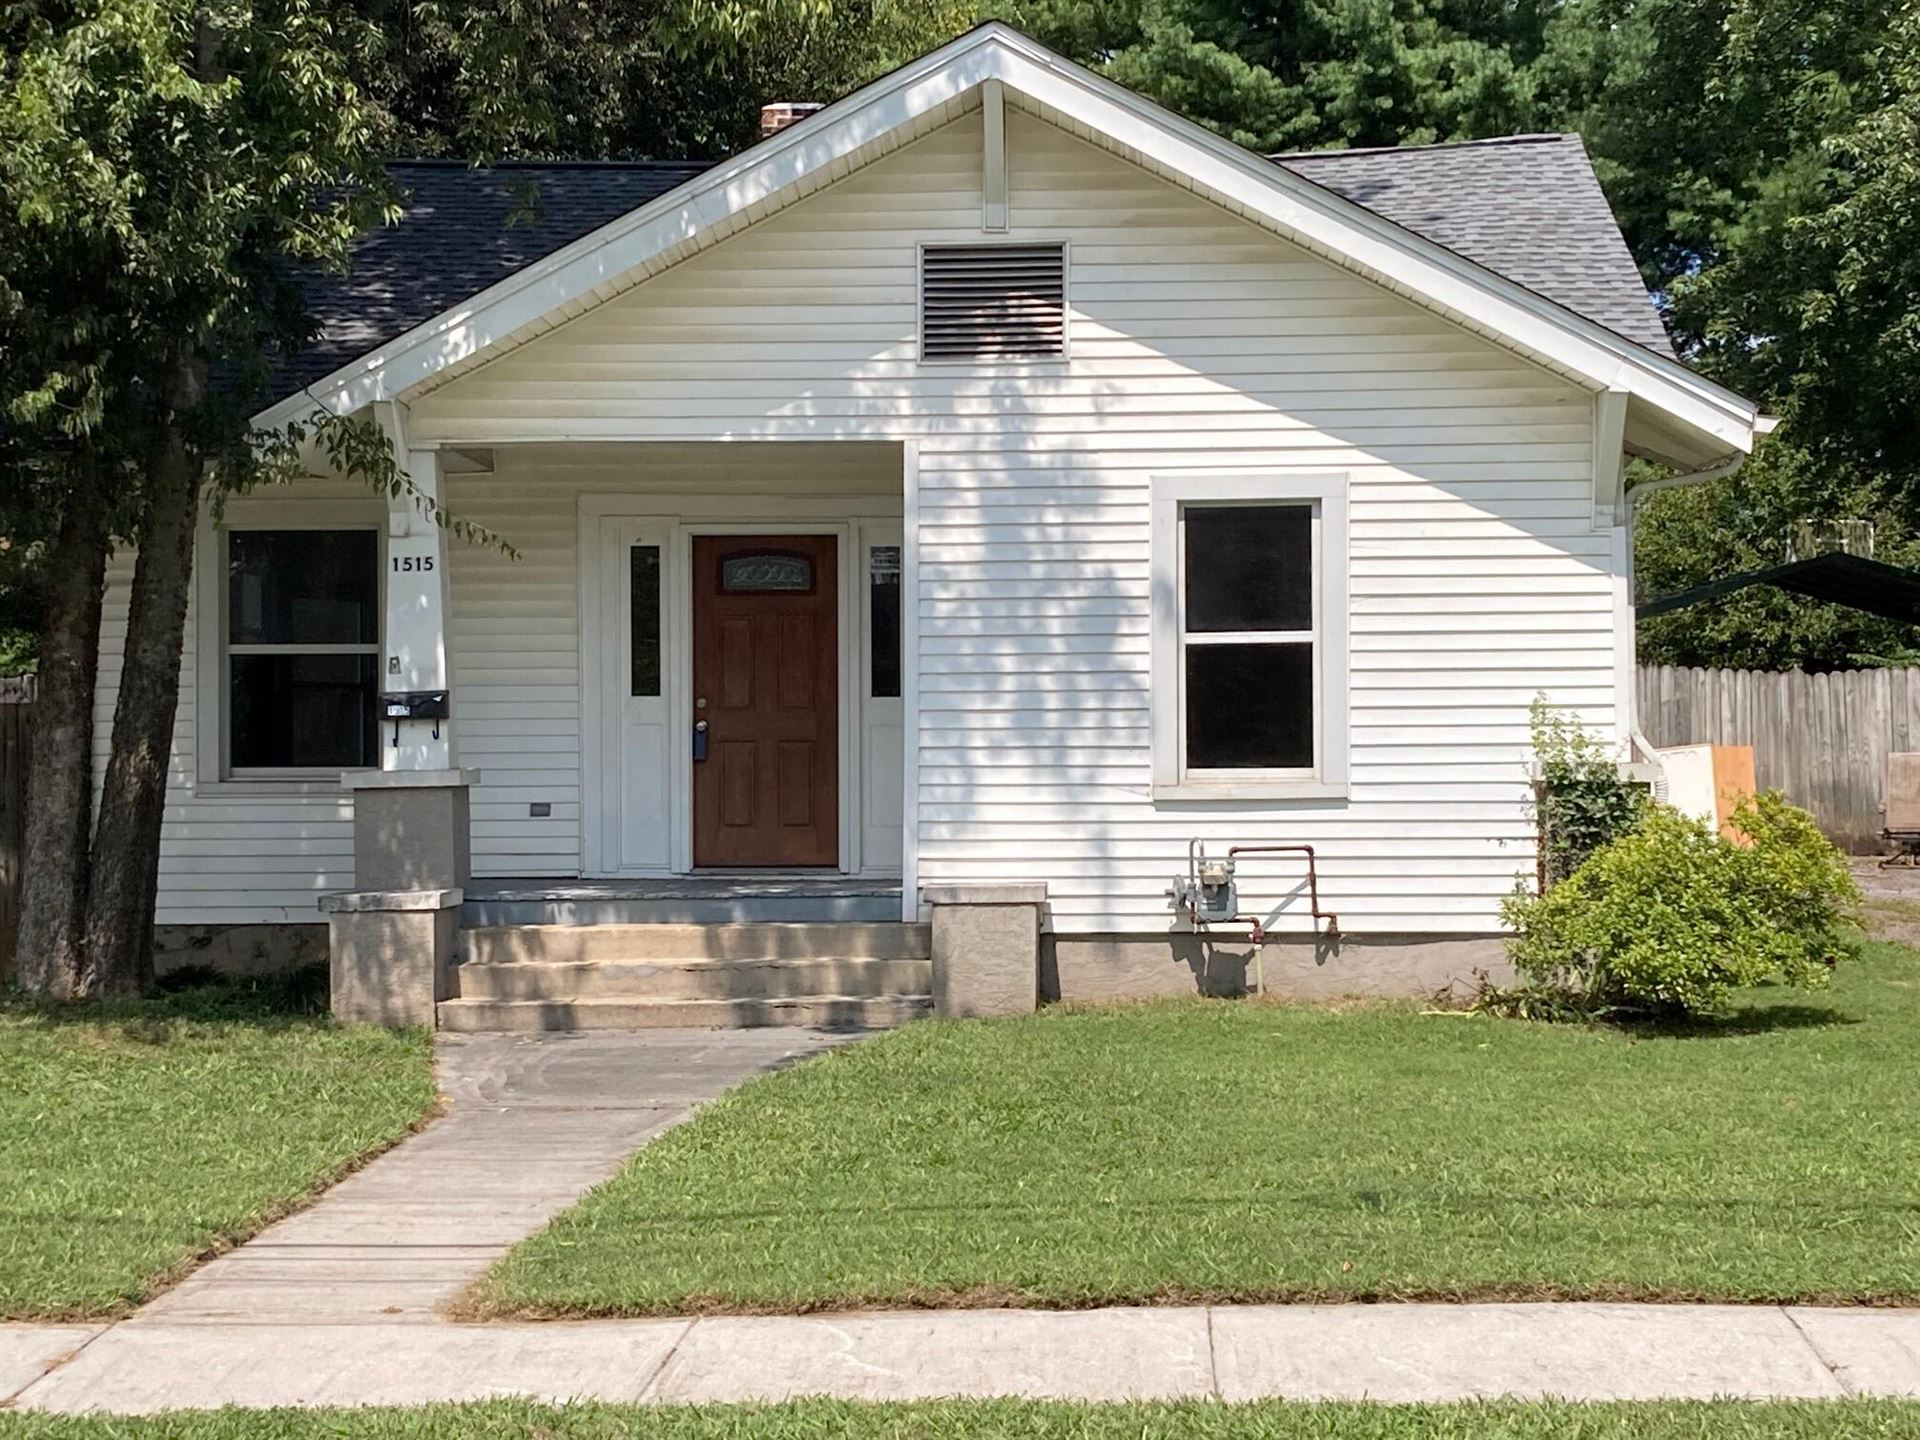 Photo of 1515 Claiborne Place, Knoxville, TN 37917 (MLS # 1162235)